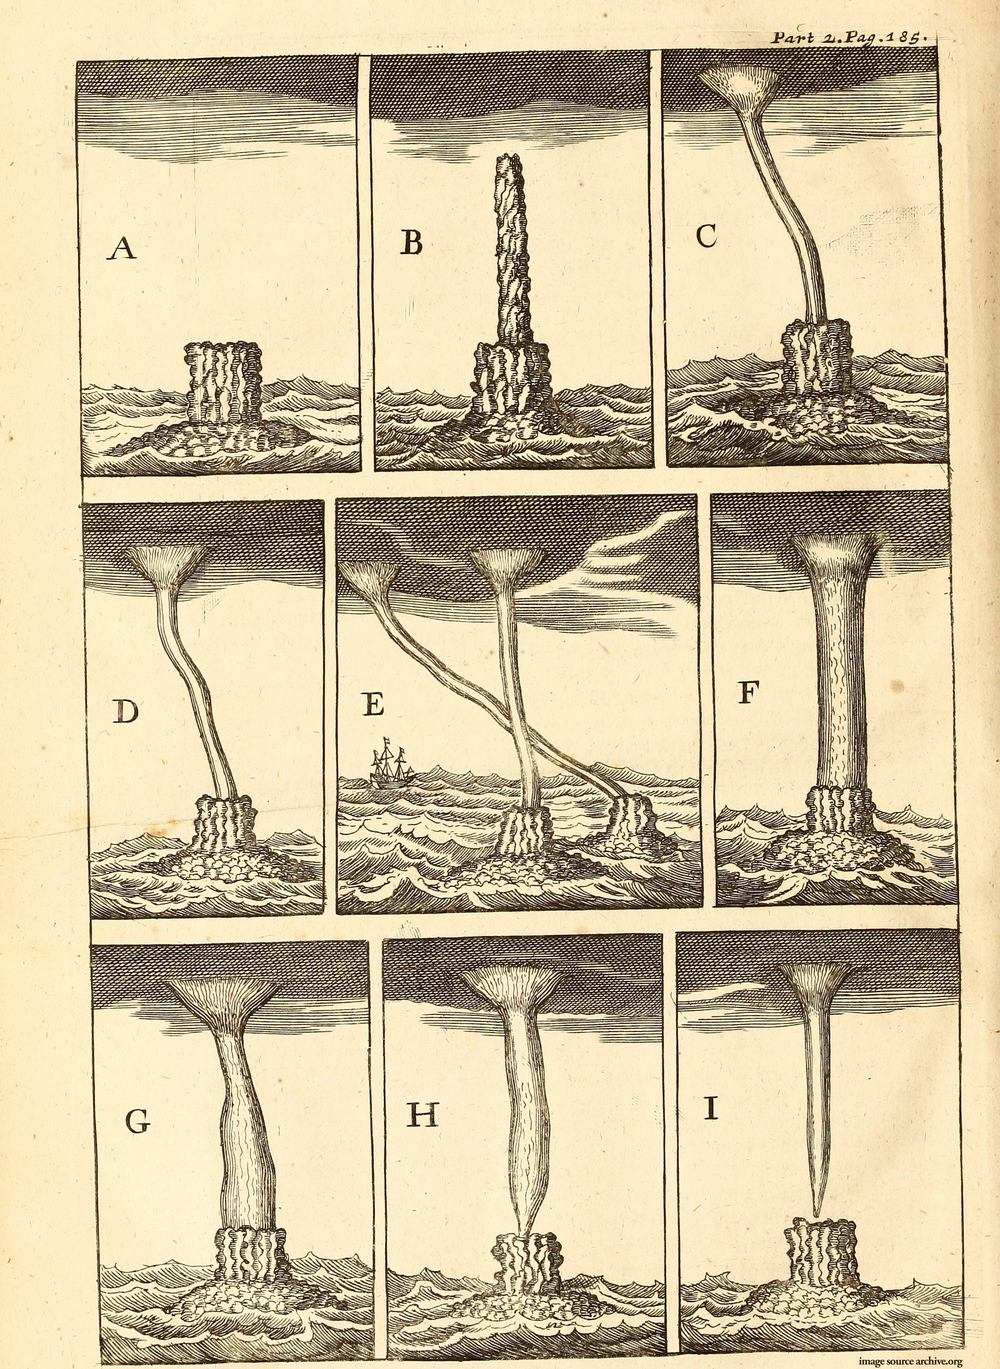 "A description of a spout [waterspout] by Jean de Thévenot (1633–1667) a French traveller, linguist, natural scientist and botanist. The waterspout occurred on 11 December 1665 ""northward between us and the isle of Quesomo [Kish Island in the Persian Golf] about a Musket shot [approximately 275 m] from the Ship"" (Thévenot 1687, p.185).  sources: The travels of Monsieur Thévenot into the Levant. In three parts. Viz. into I. Turkey. II. Persia. III. The East-Indies. Newly done out of French. London, 1686, Printed by H. Clarck, for H. Faithorne, J. Adamson, C. Skegnes, and T. Newborough, Booksellers in St. Paul's Church-Yard, MDCLXXXVII. via archive.rog."